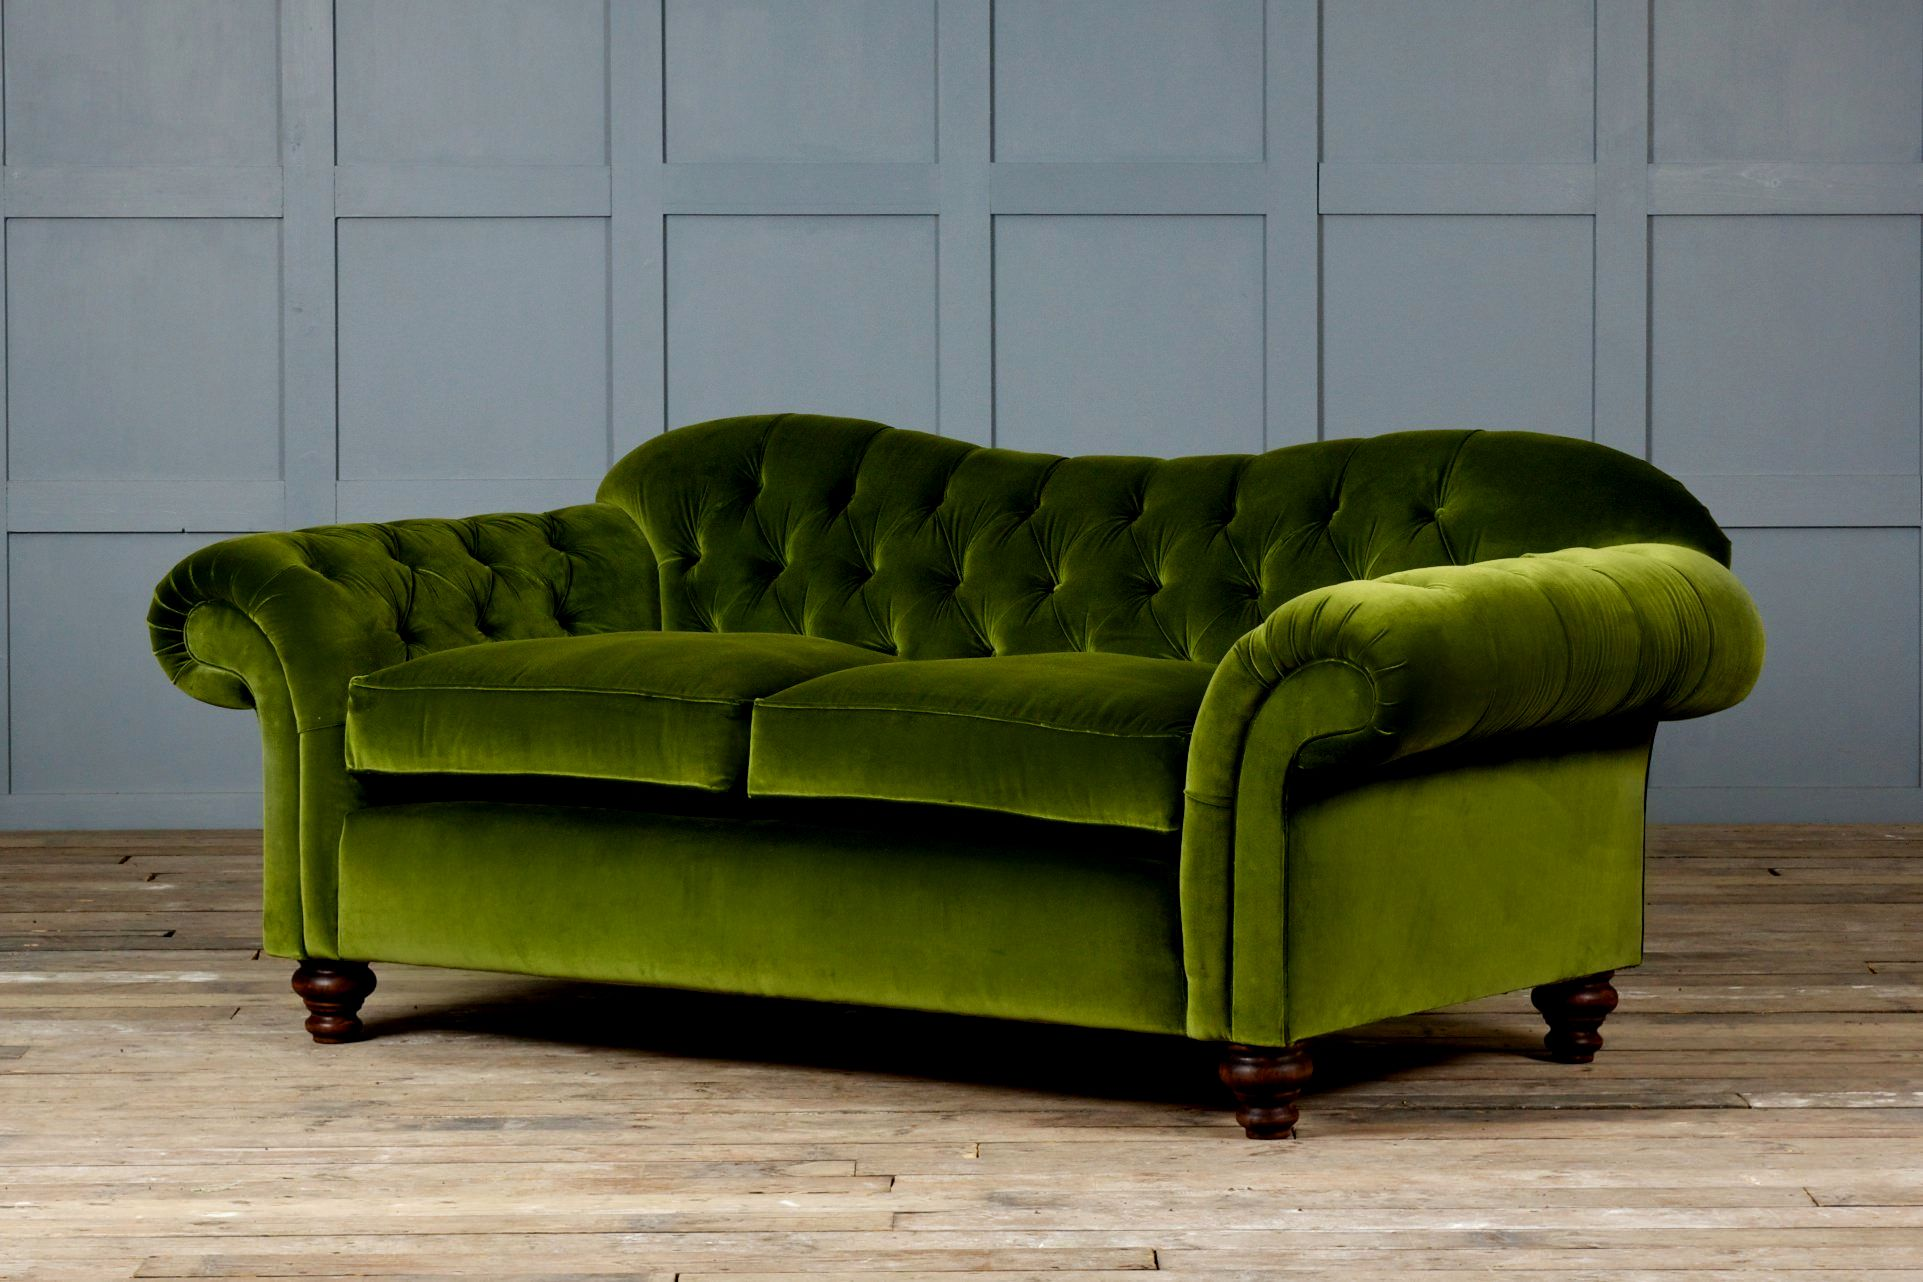 beautiful italian sectional sofa design-Cute Italian Sectional sofa Inspiration